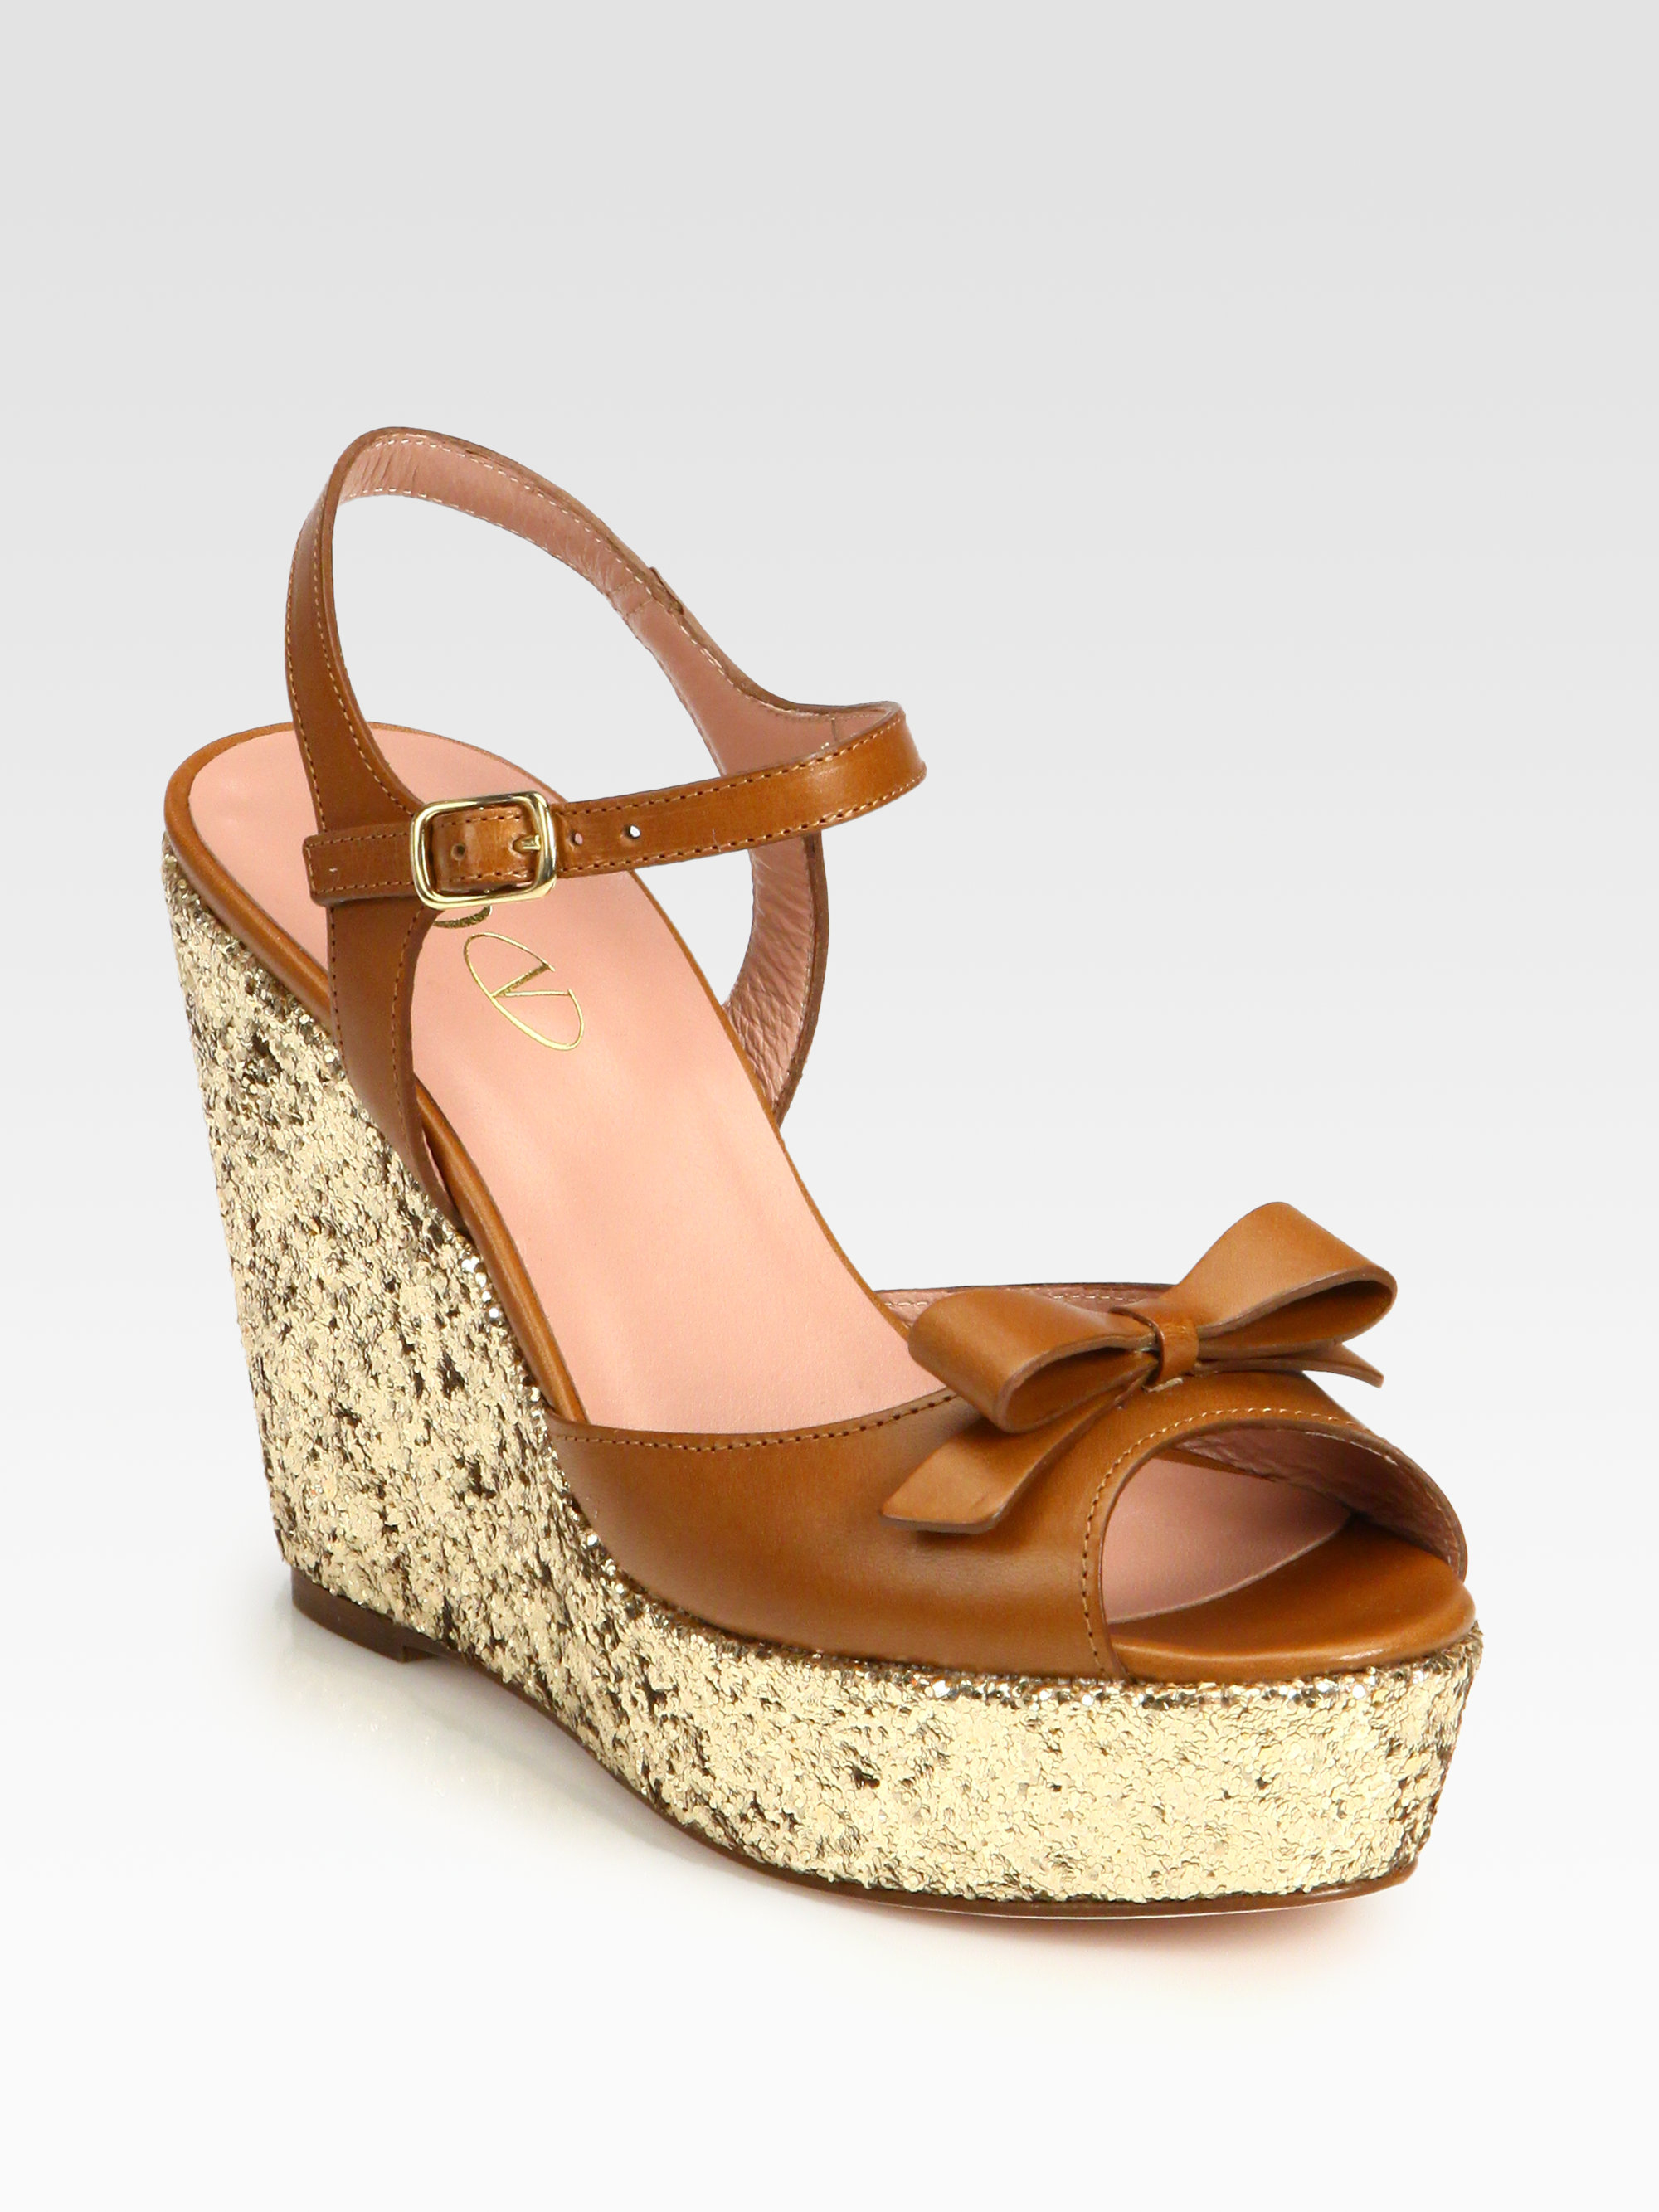 4d4d84fc6a4 Lyst - RED Valentino Leather Bow Glitter Wedge Sandals in Brown